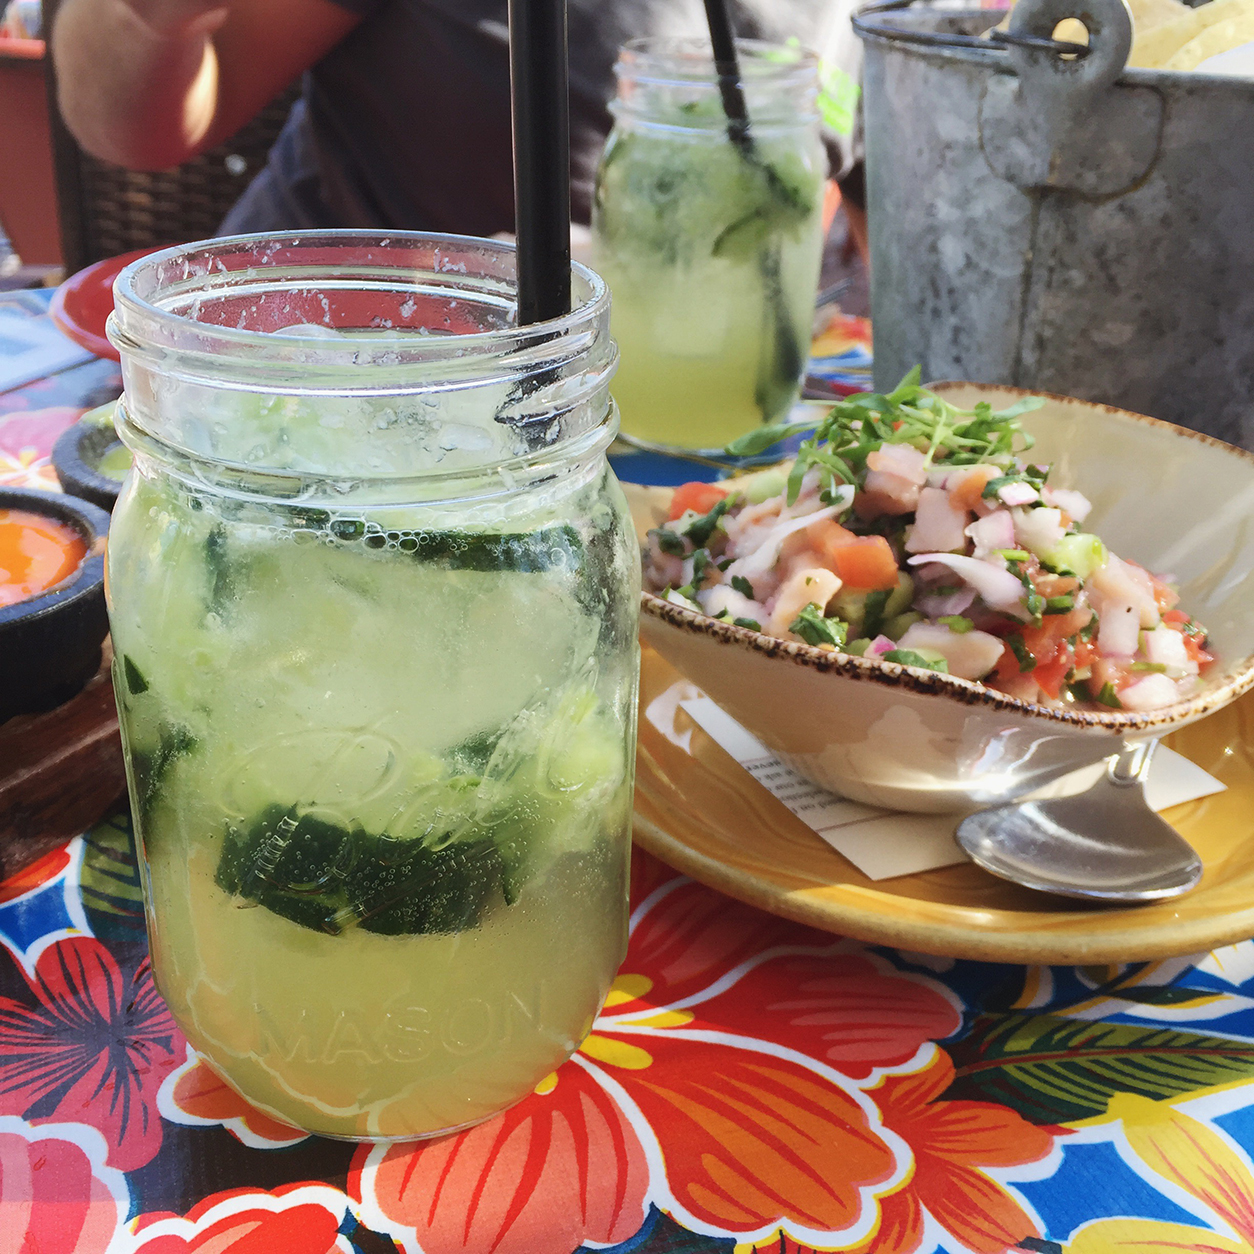 Spicy margarita and ceviche, yum_joyfetti.com